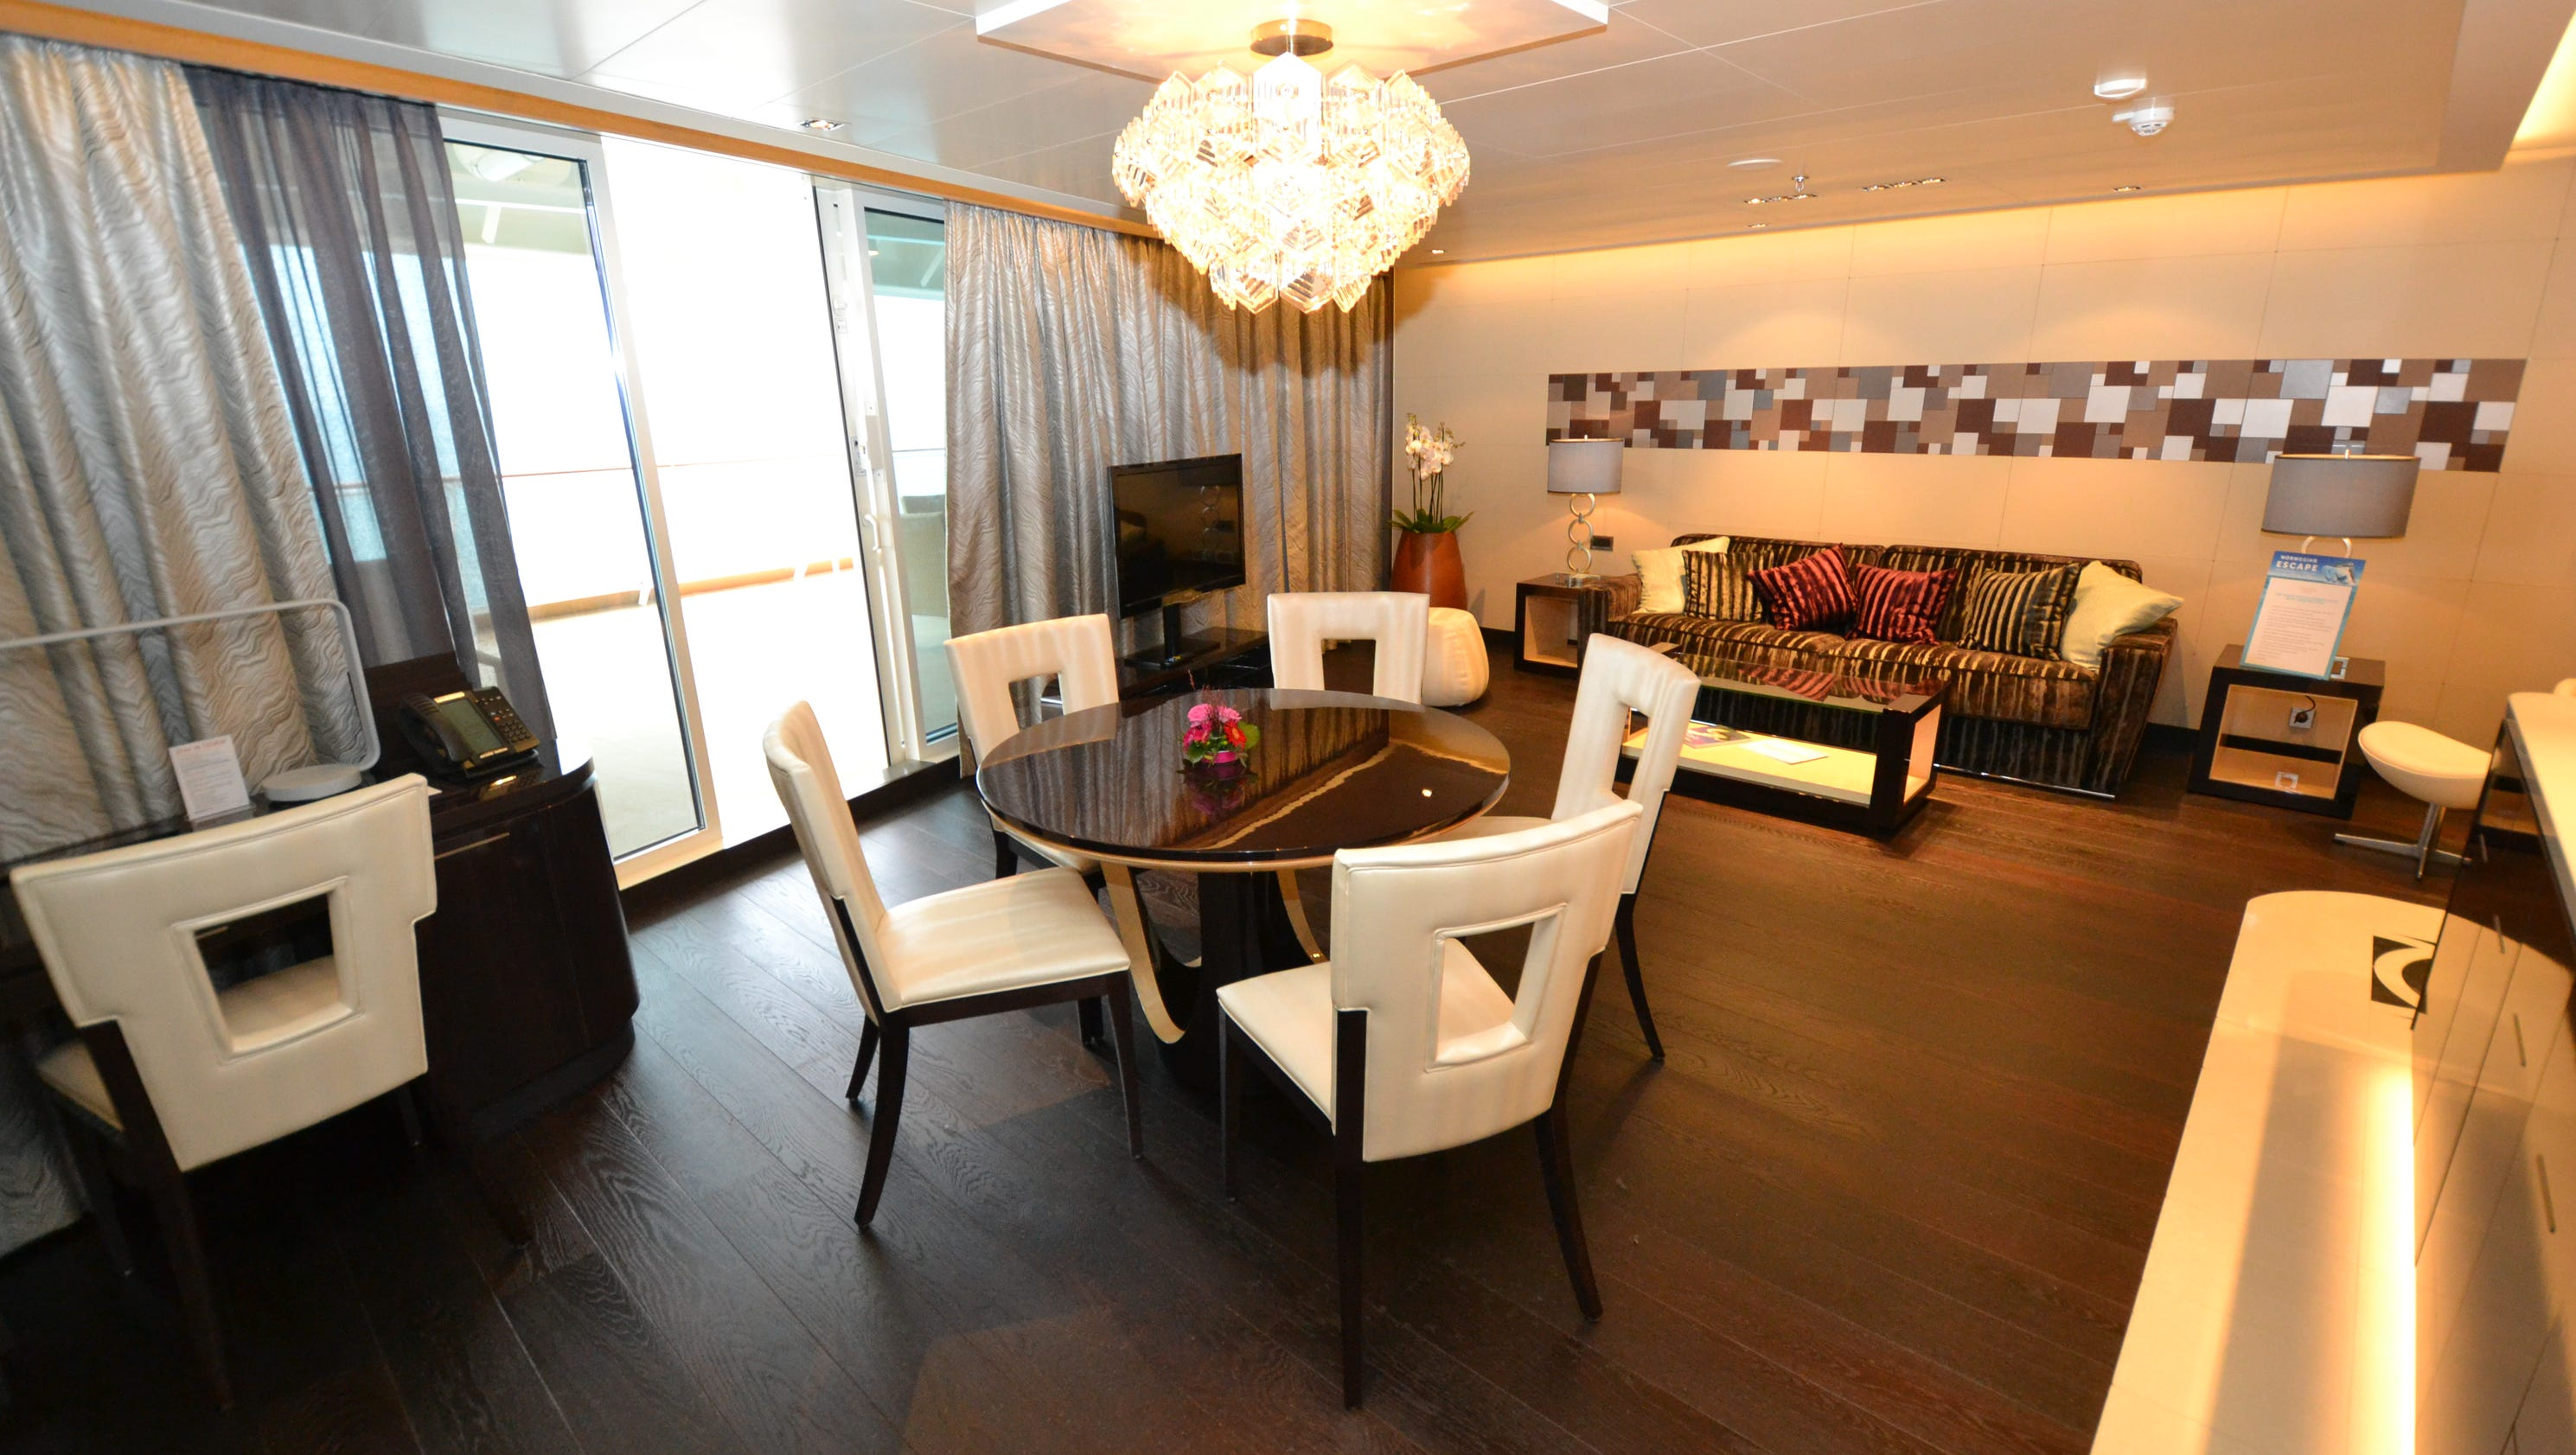 Living Large Inside The Swanky Suites On The New. Kitchen Floor Tile Installation. Kitchen Appliances Tampa. Chinese Kitchen Rock Island Il. Kitchen And Light Gallery. Floating Kitchen Islands. Tile Ideas For Kitchen Floors. Kitchen Under Cabinet Led Lighting. Pics Of Kitchen Islands